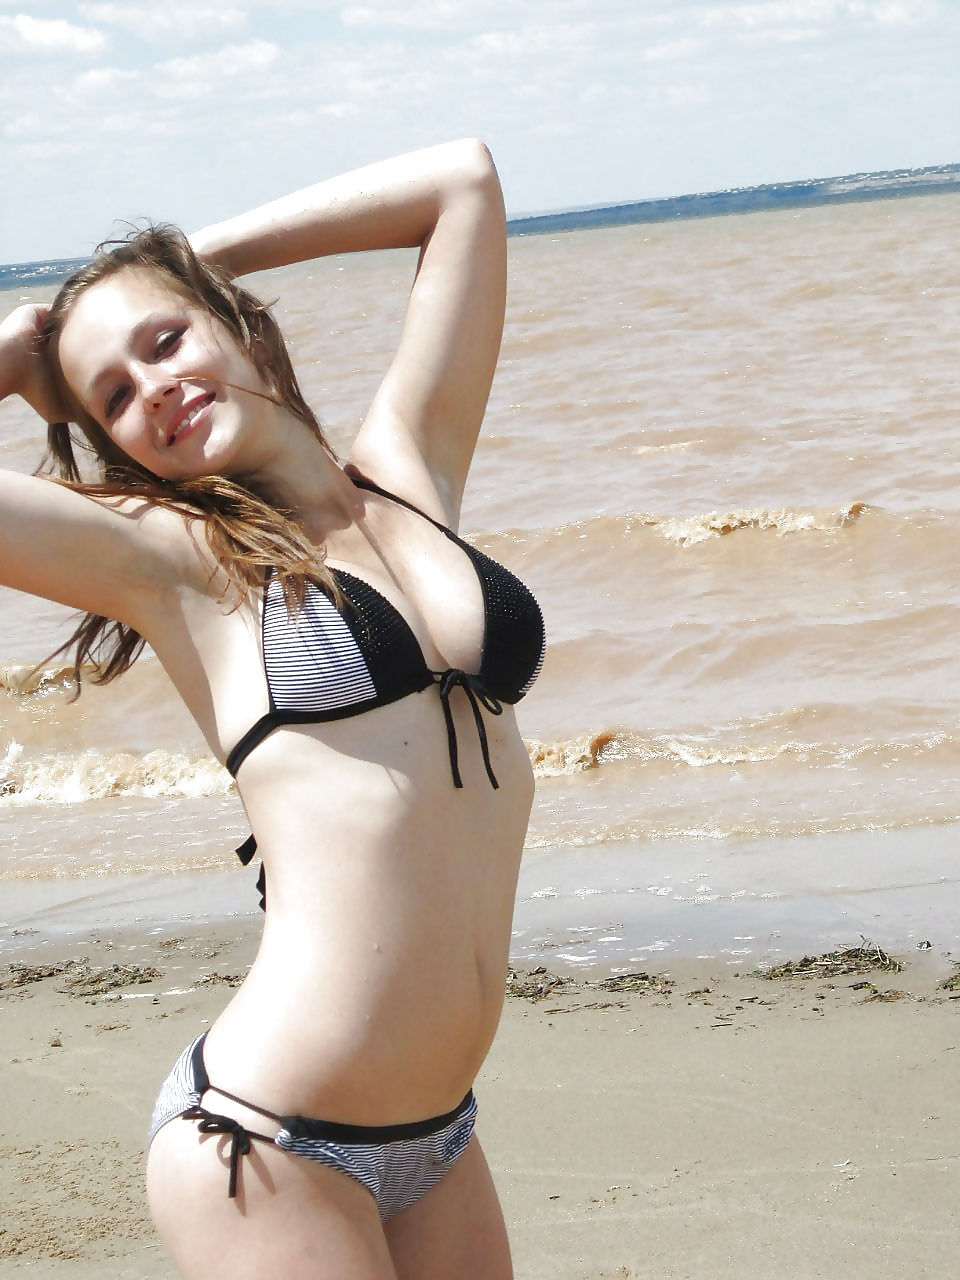 bikini and more 62 - Amateur Beach NON-Porn